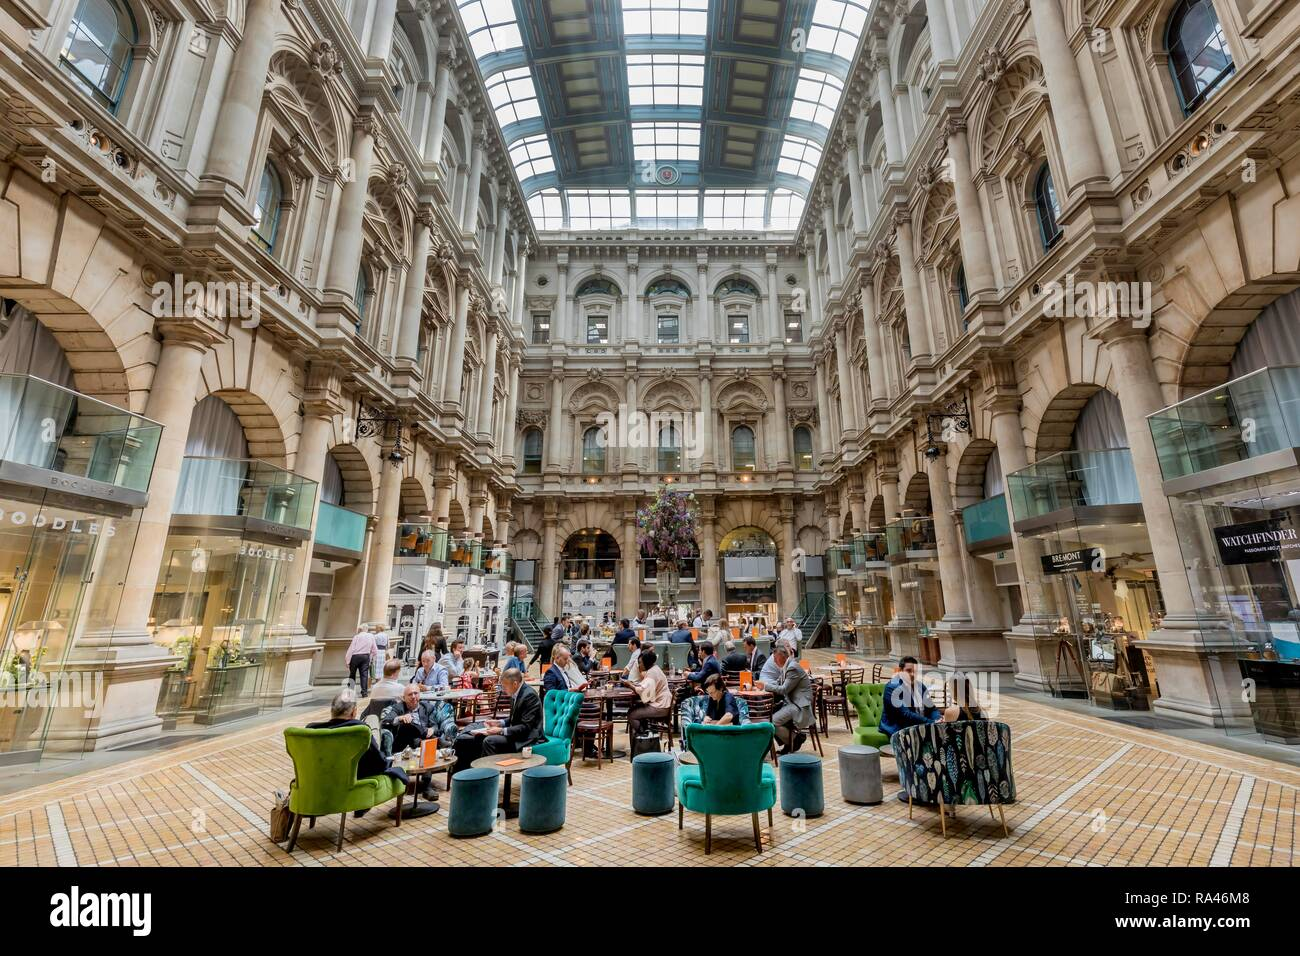 Royal Exchange, interior view, Threadneedle Street, financial district, London, Great Britain - Stock Image